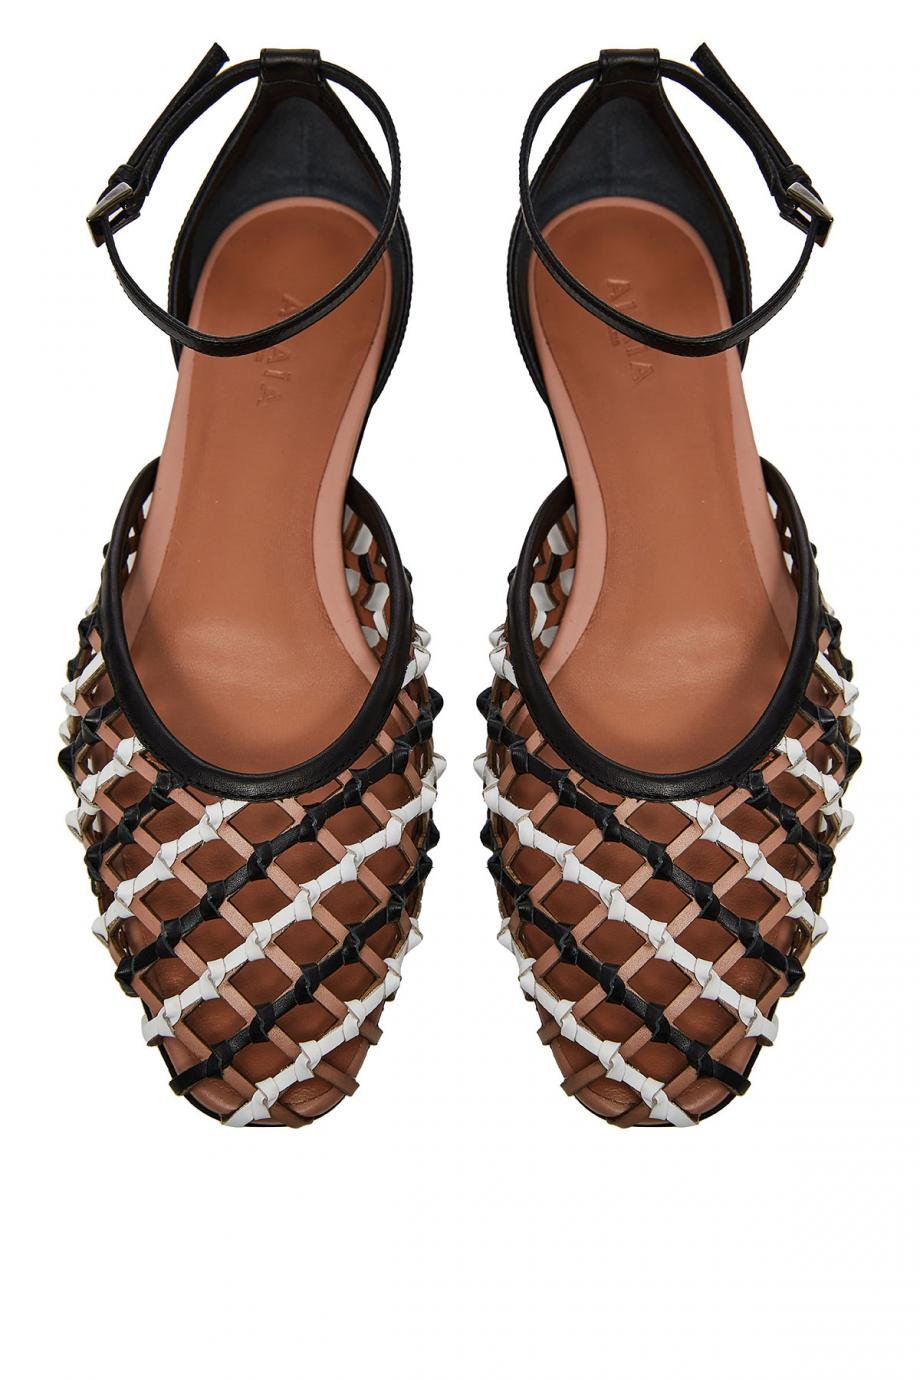 Braided leather flats